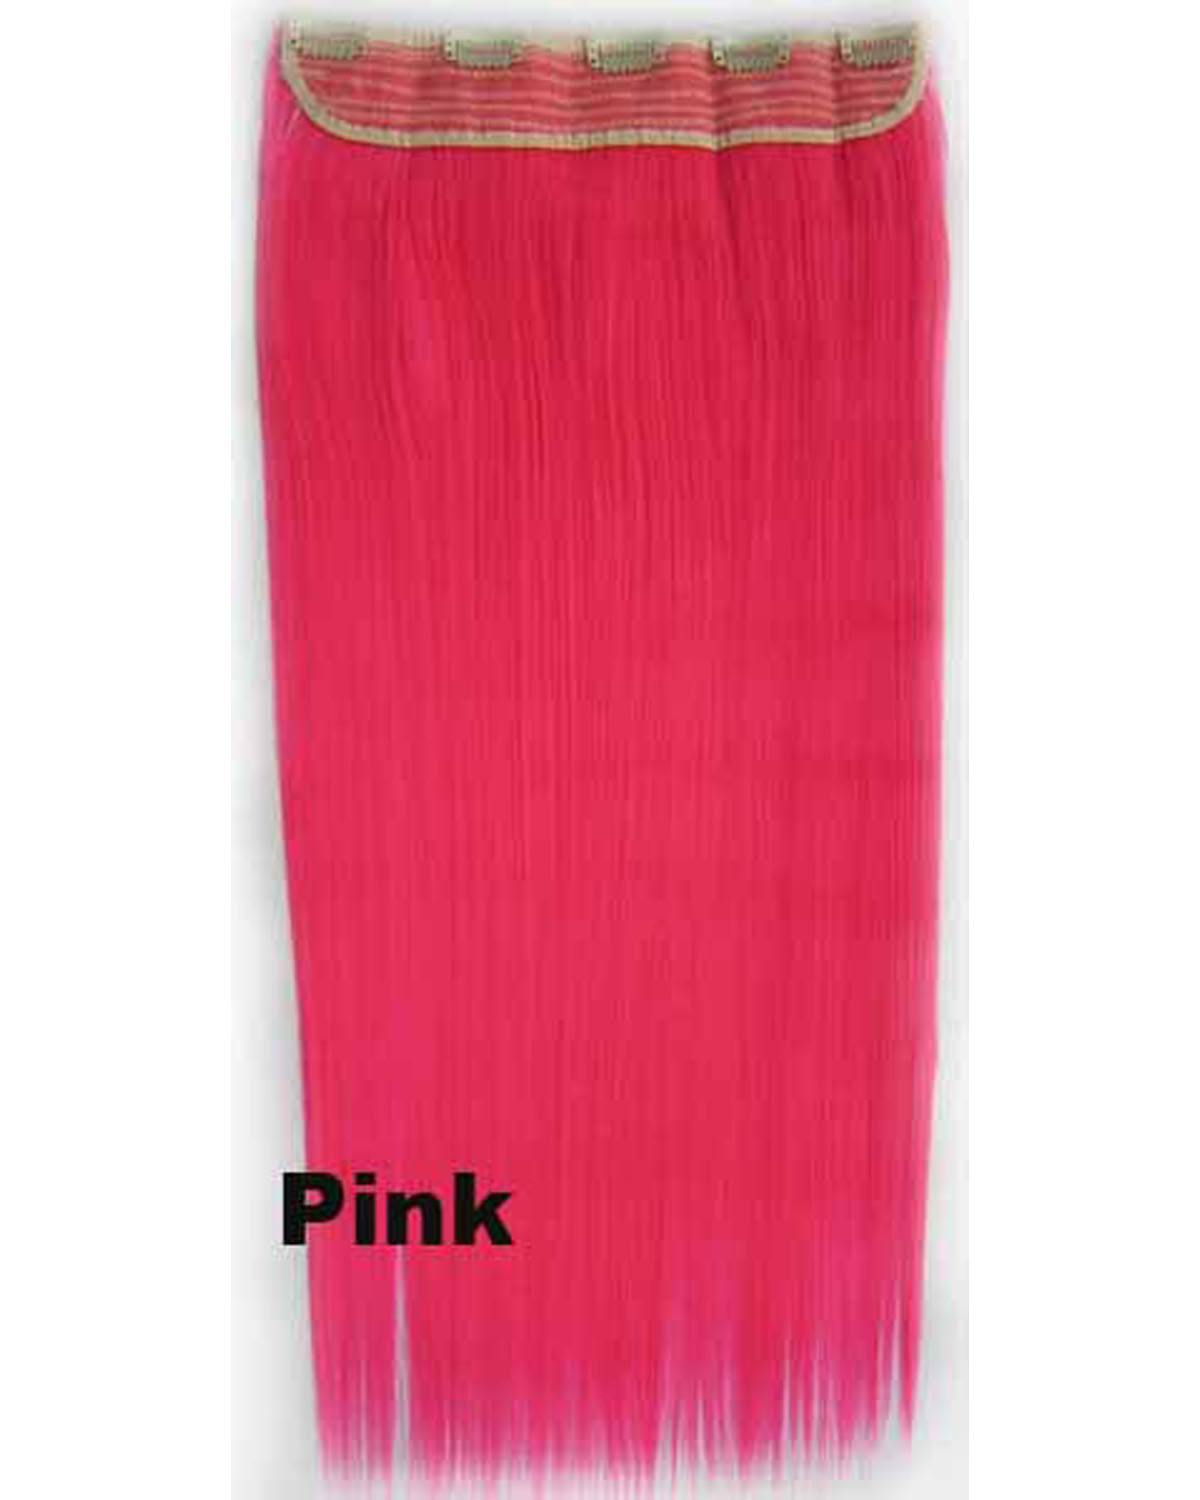 24 Inch Female Nice Straight Long One Piece 5 Clips Clip in Synthetic Hair Extension Pink